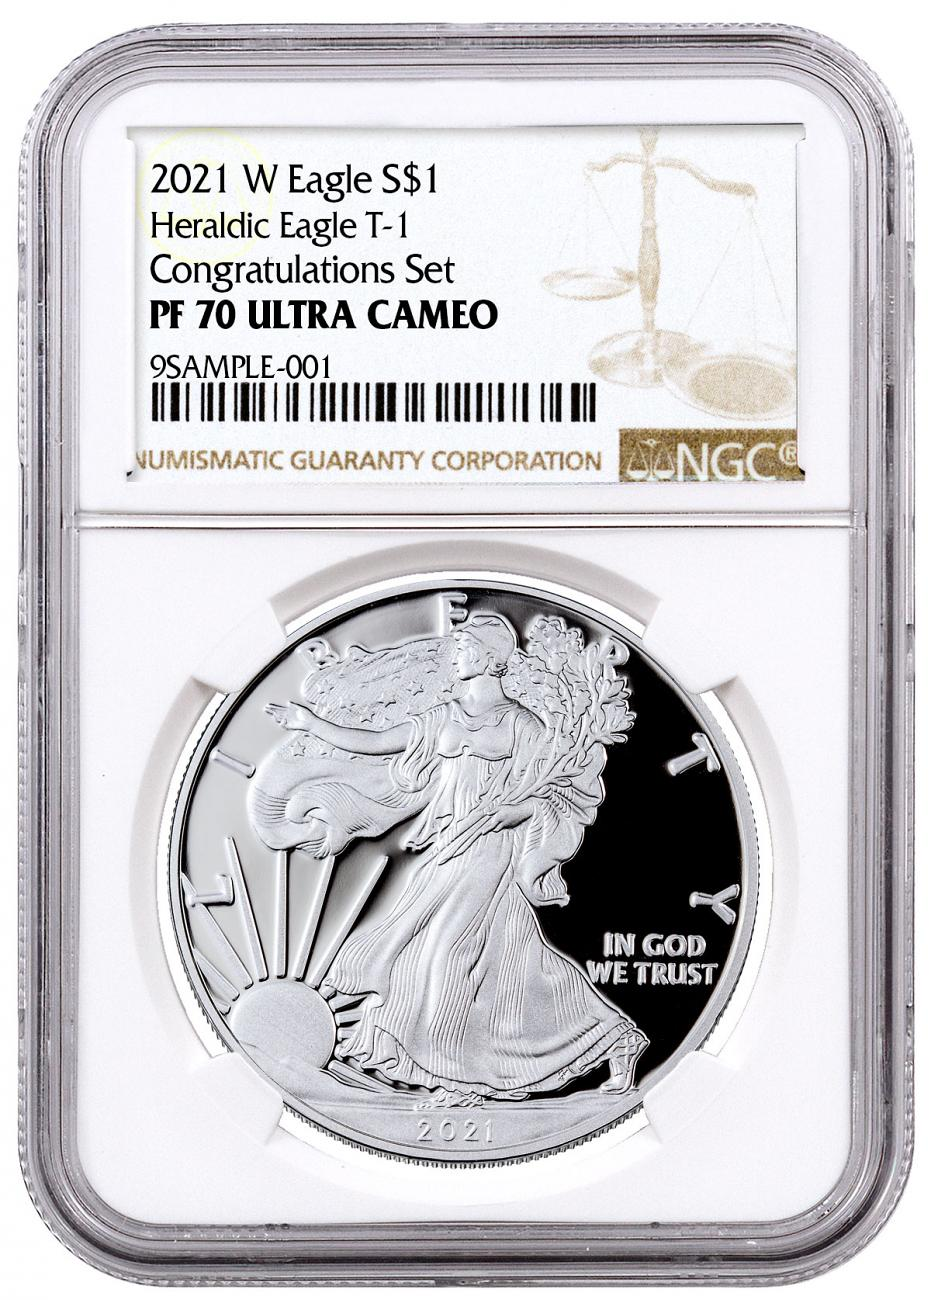 2021-W Proof American Silver Eagle T-1 Congratulations Set NGC PF70 UC Brown Label